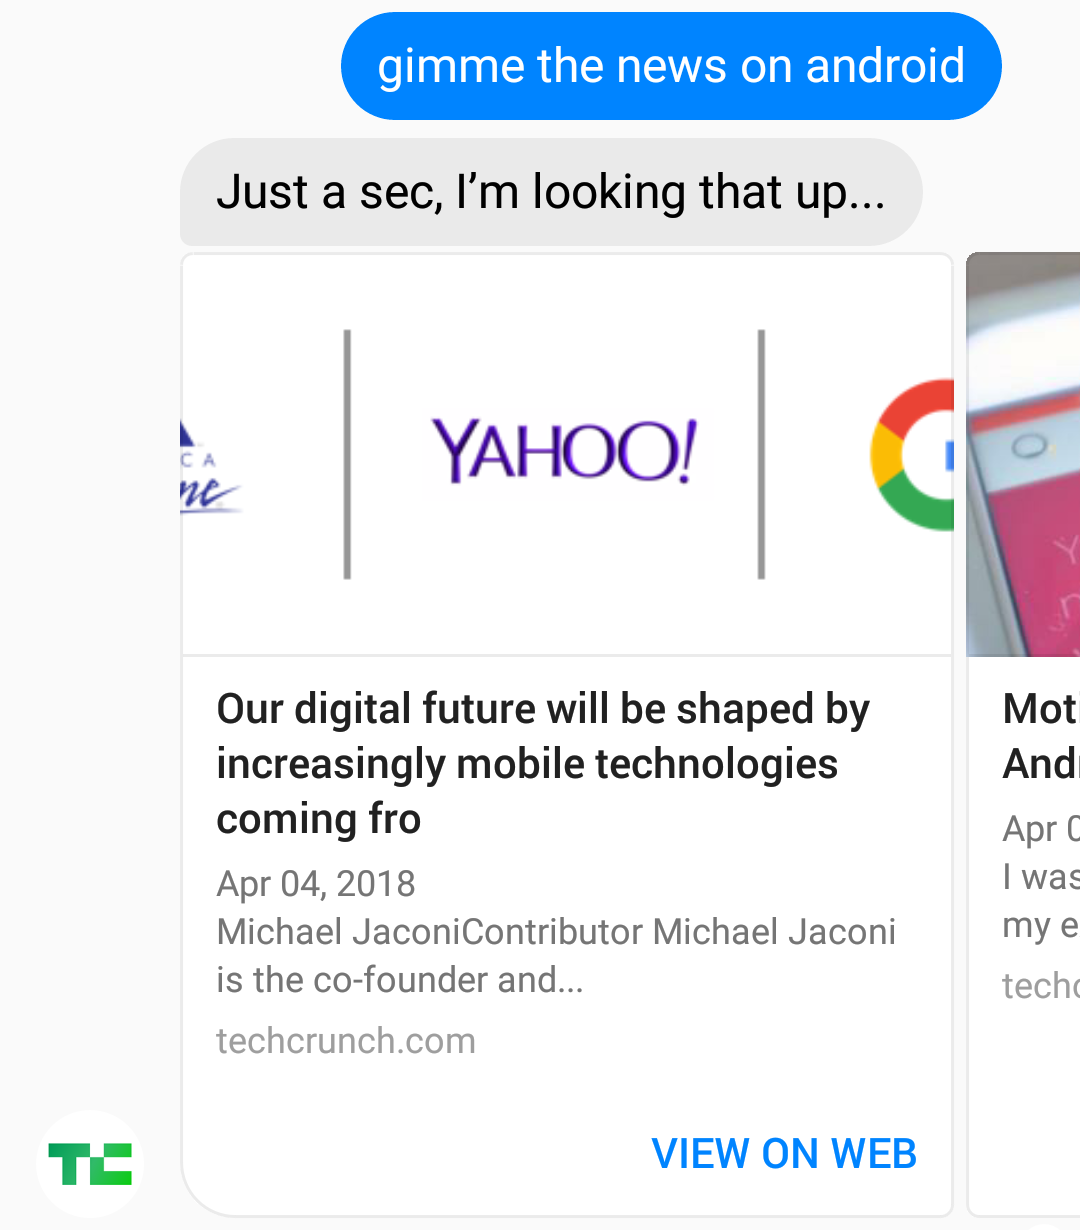 gimme the news on android